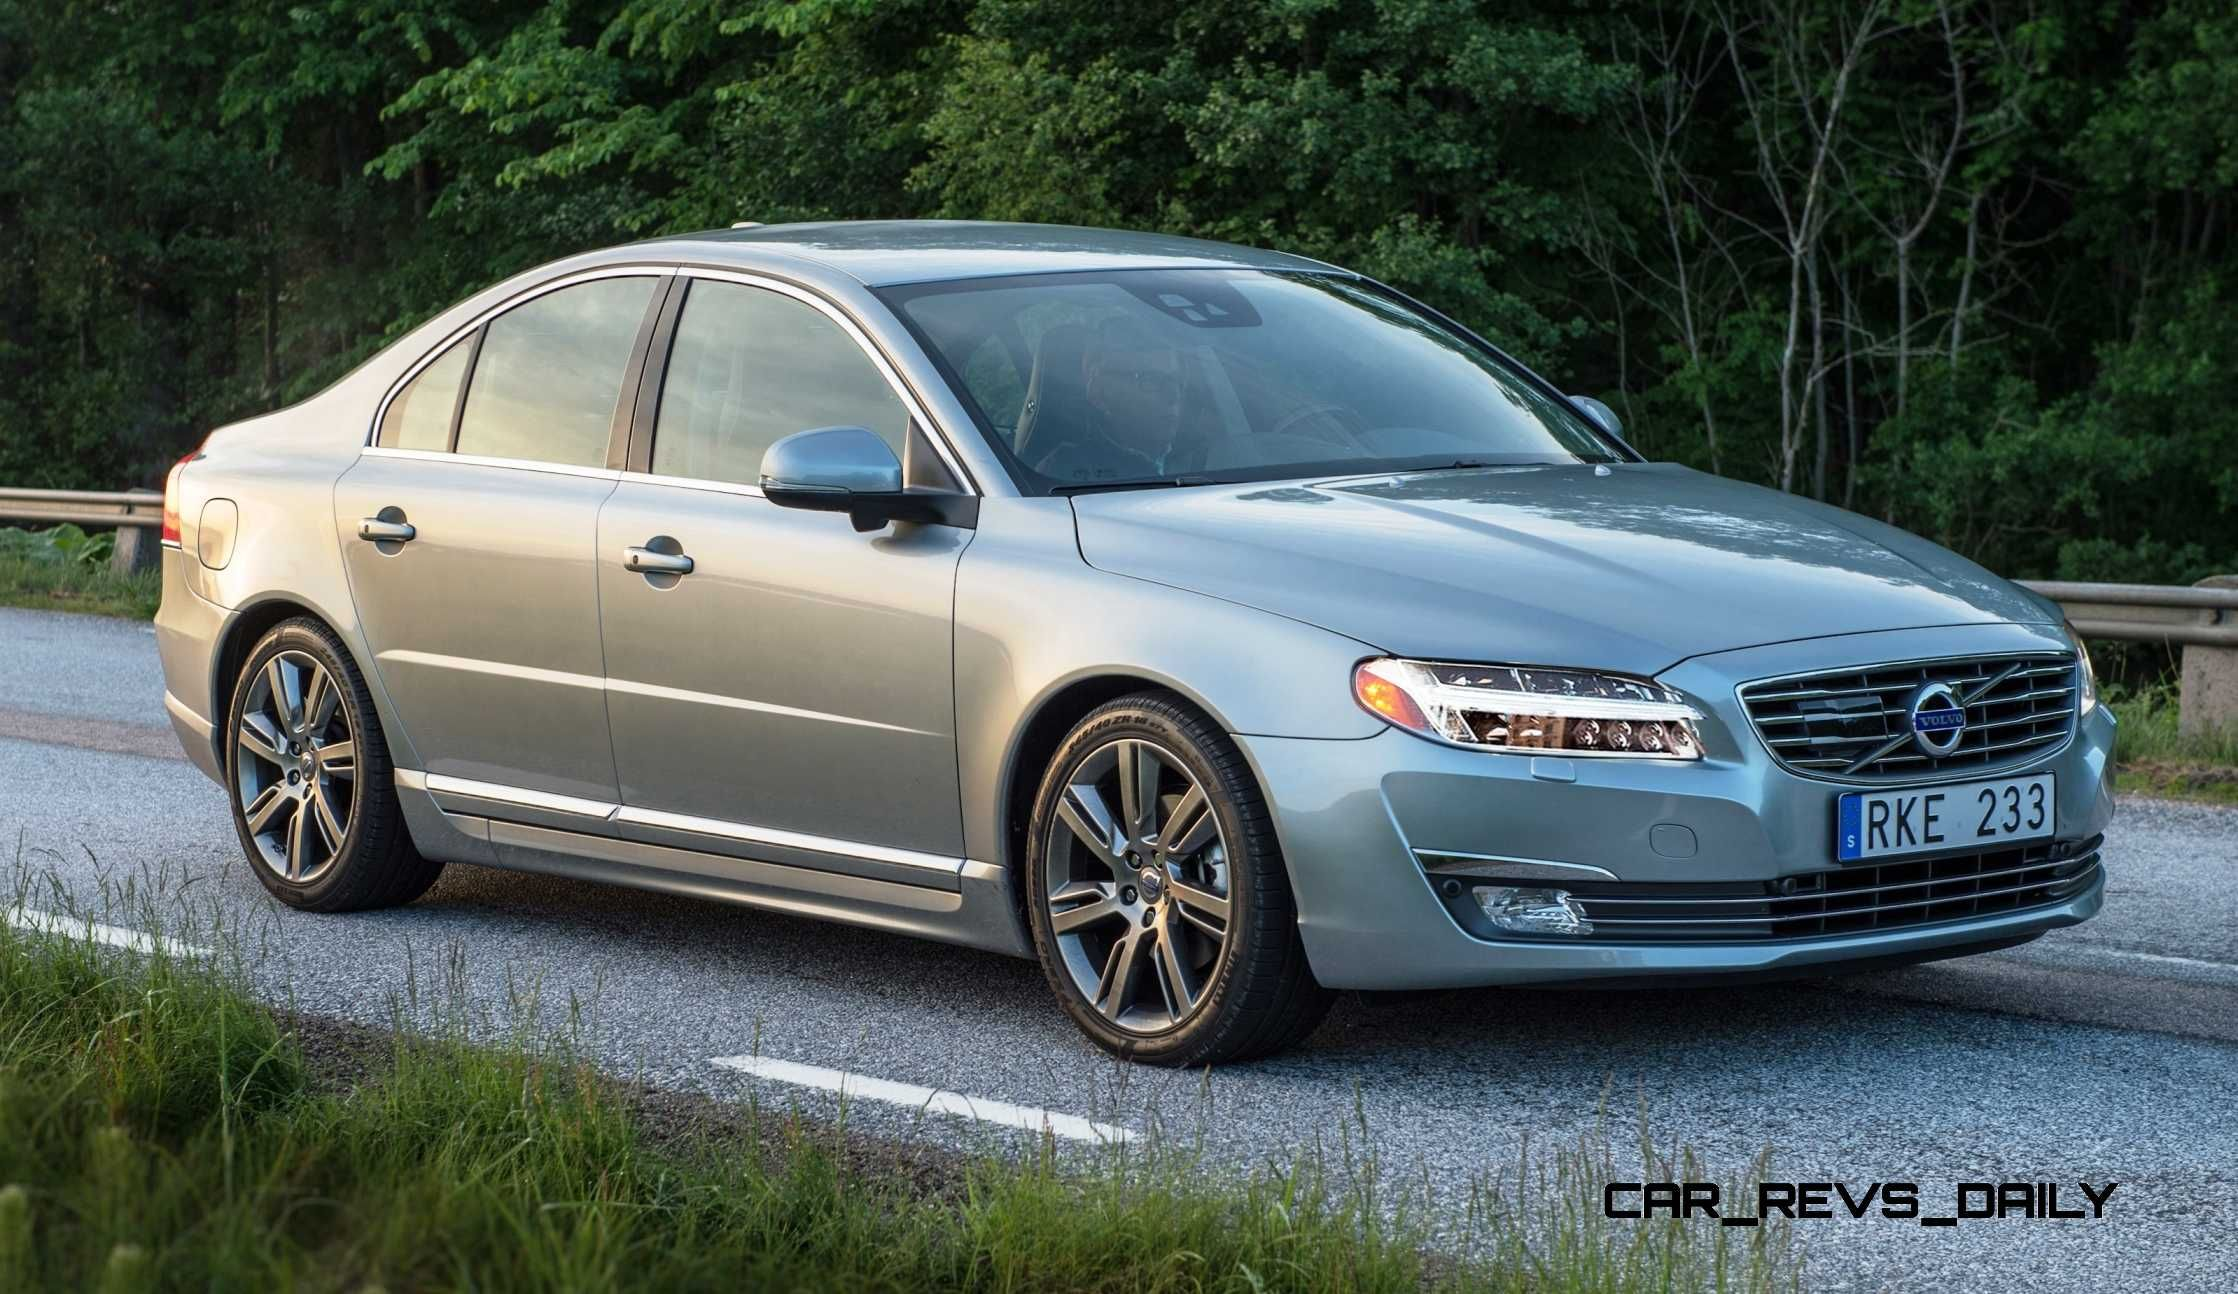 2016 Volvo S80 >> Speculative Renderings 2016 Volvo S80 And 2017 Volvo S60